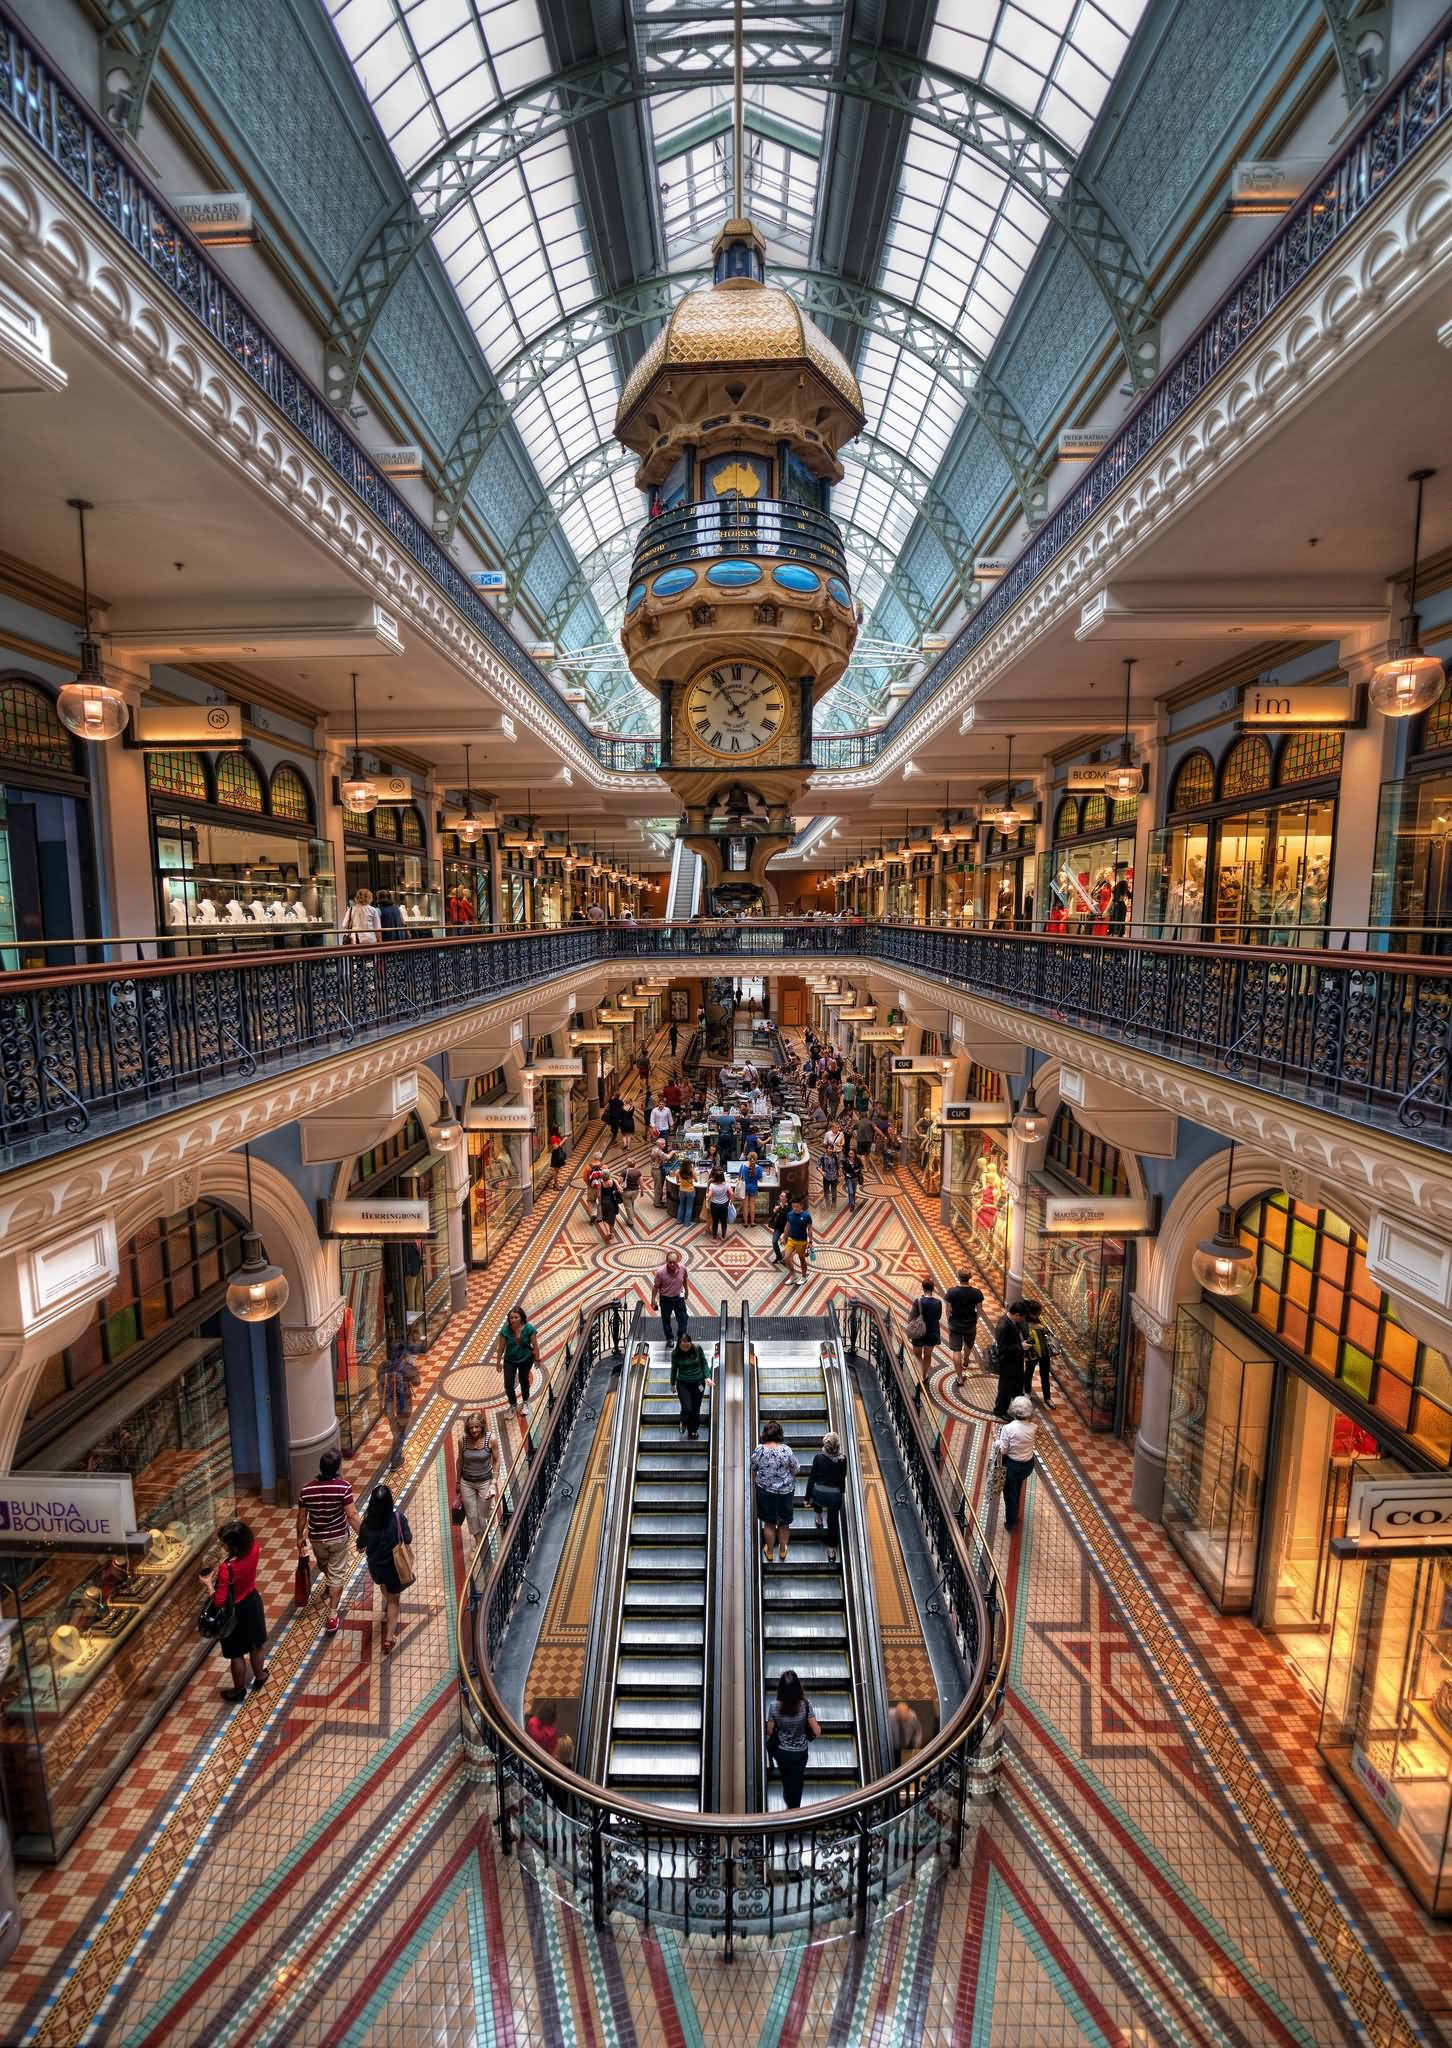 30 awesome queen victoria building images and picture